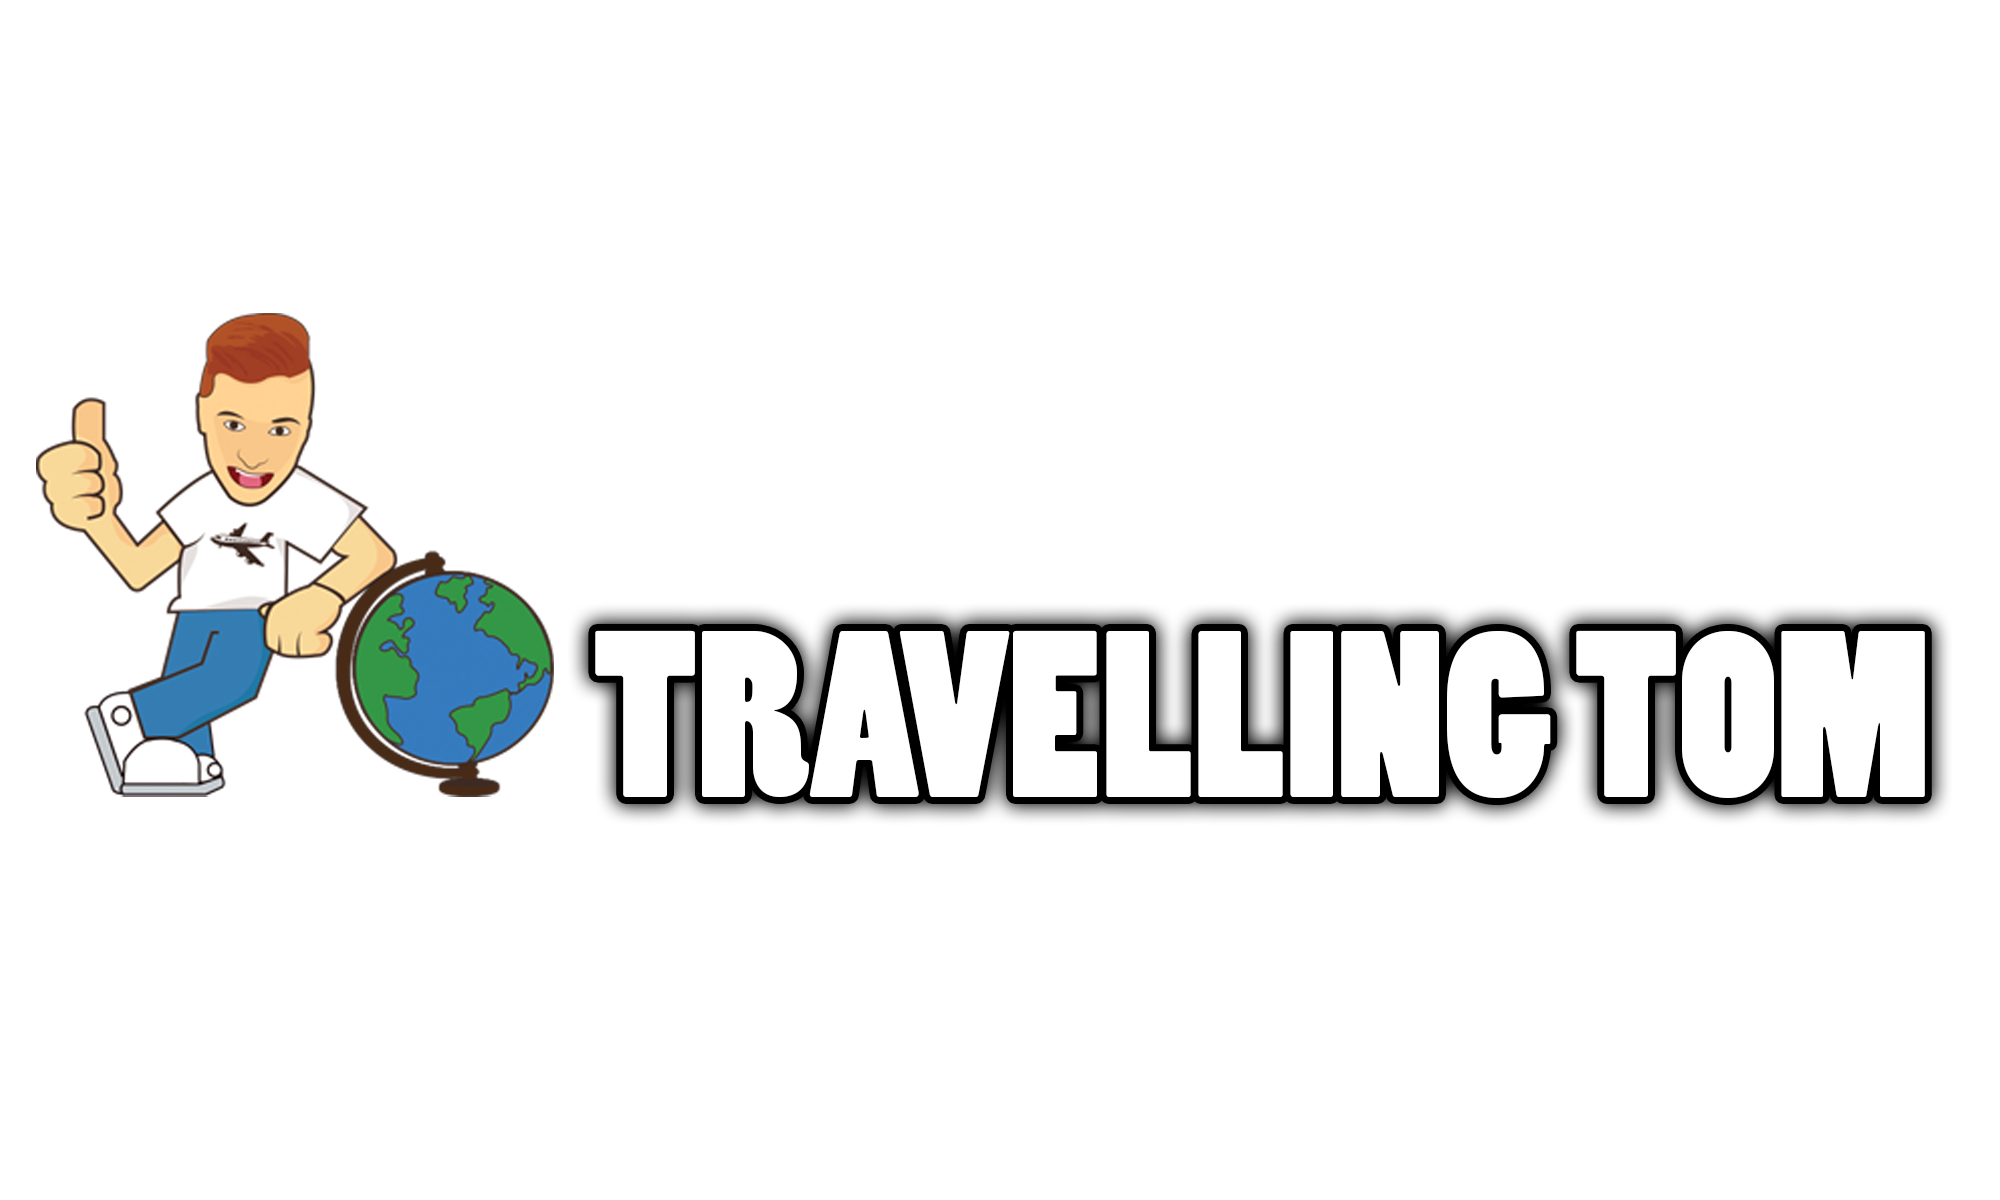 This Travelling Tom logo will soon be retired - thumbs up and all.